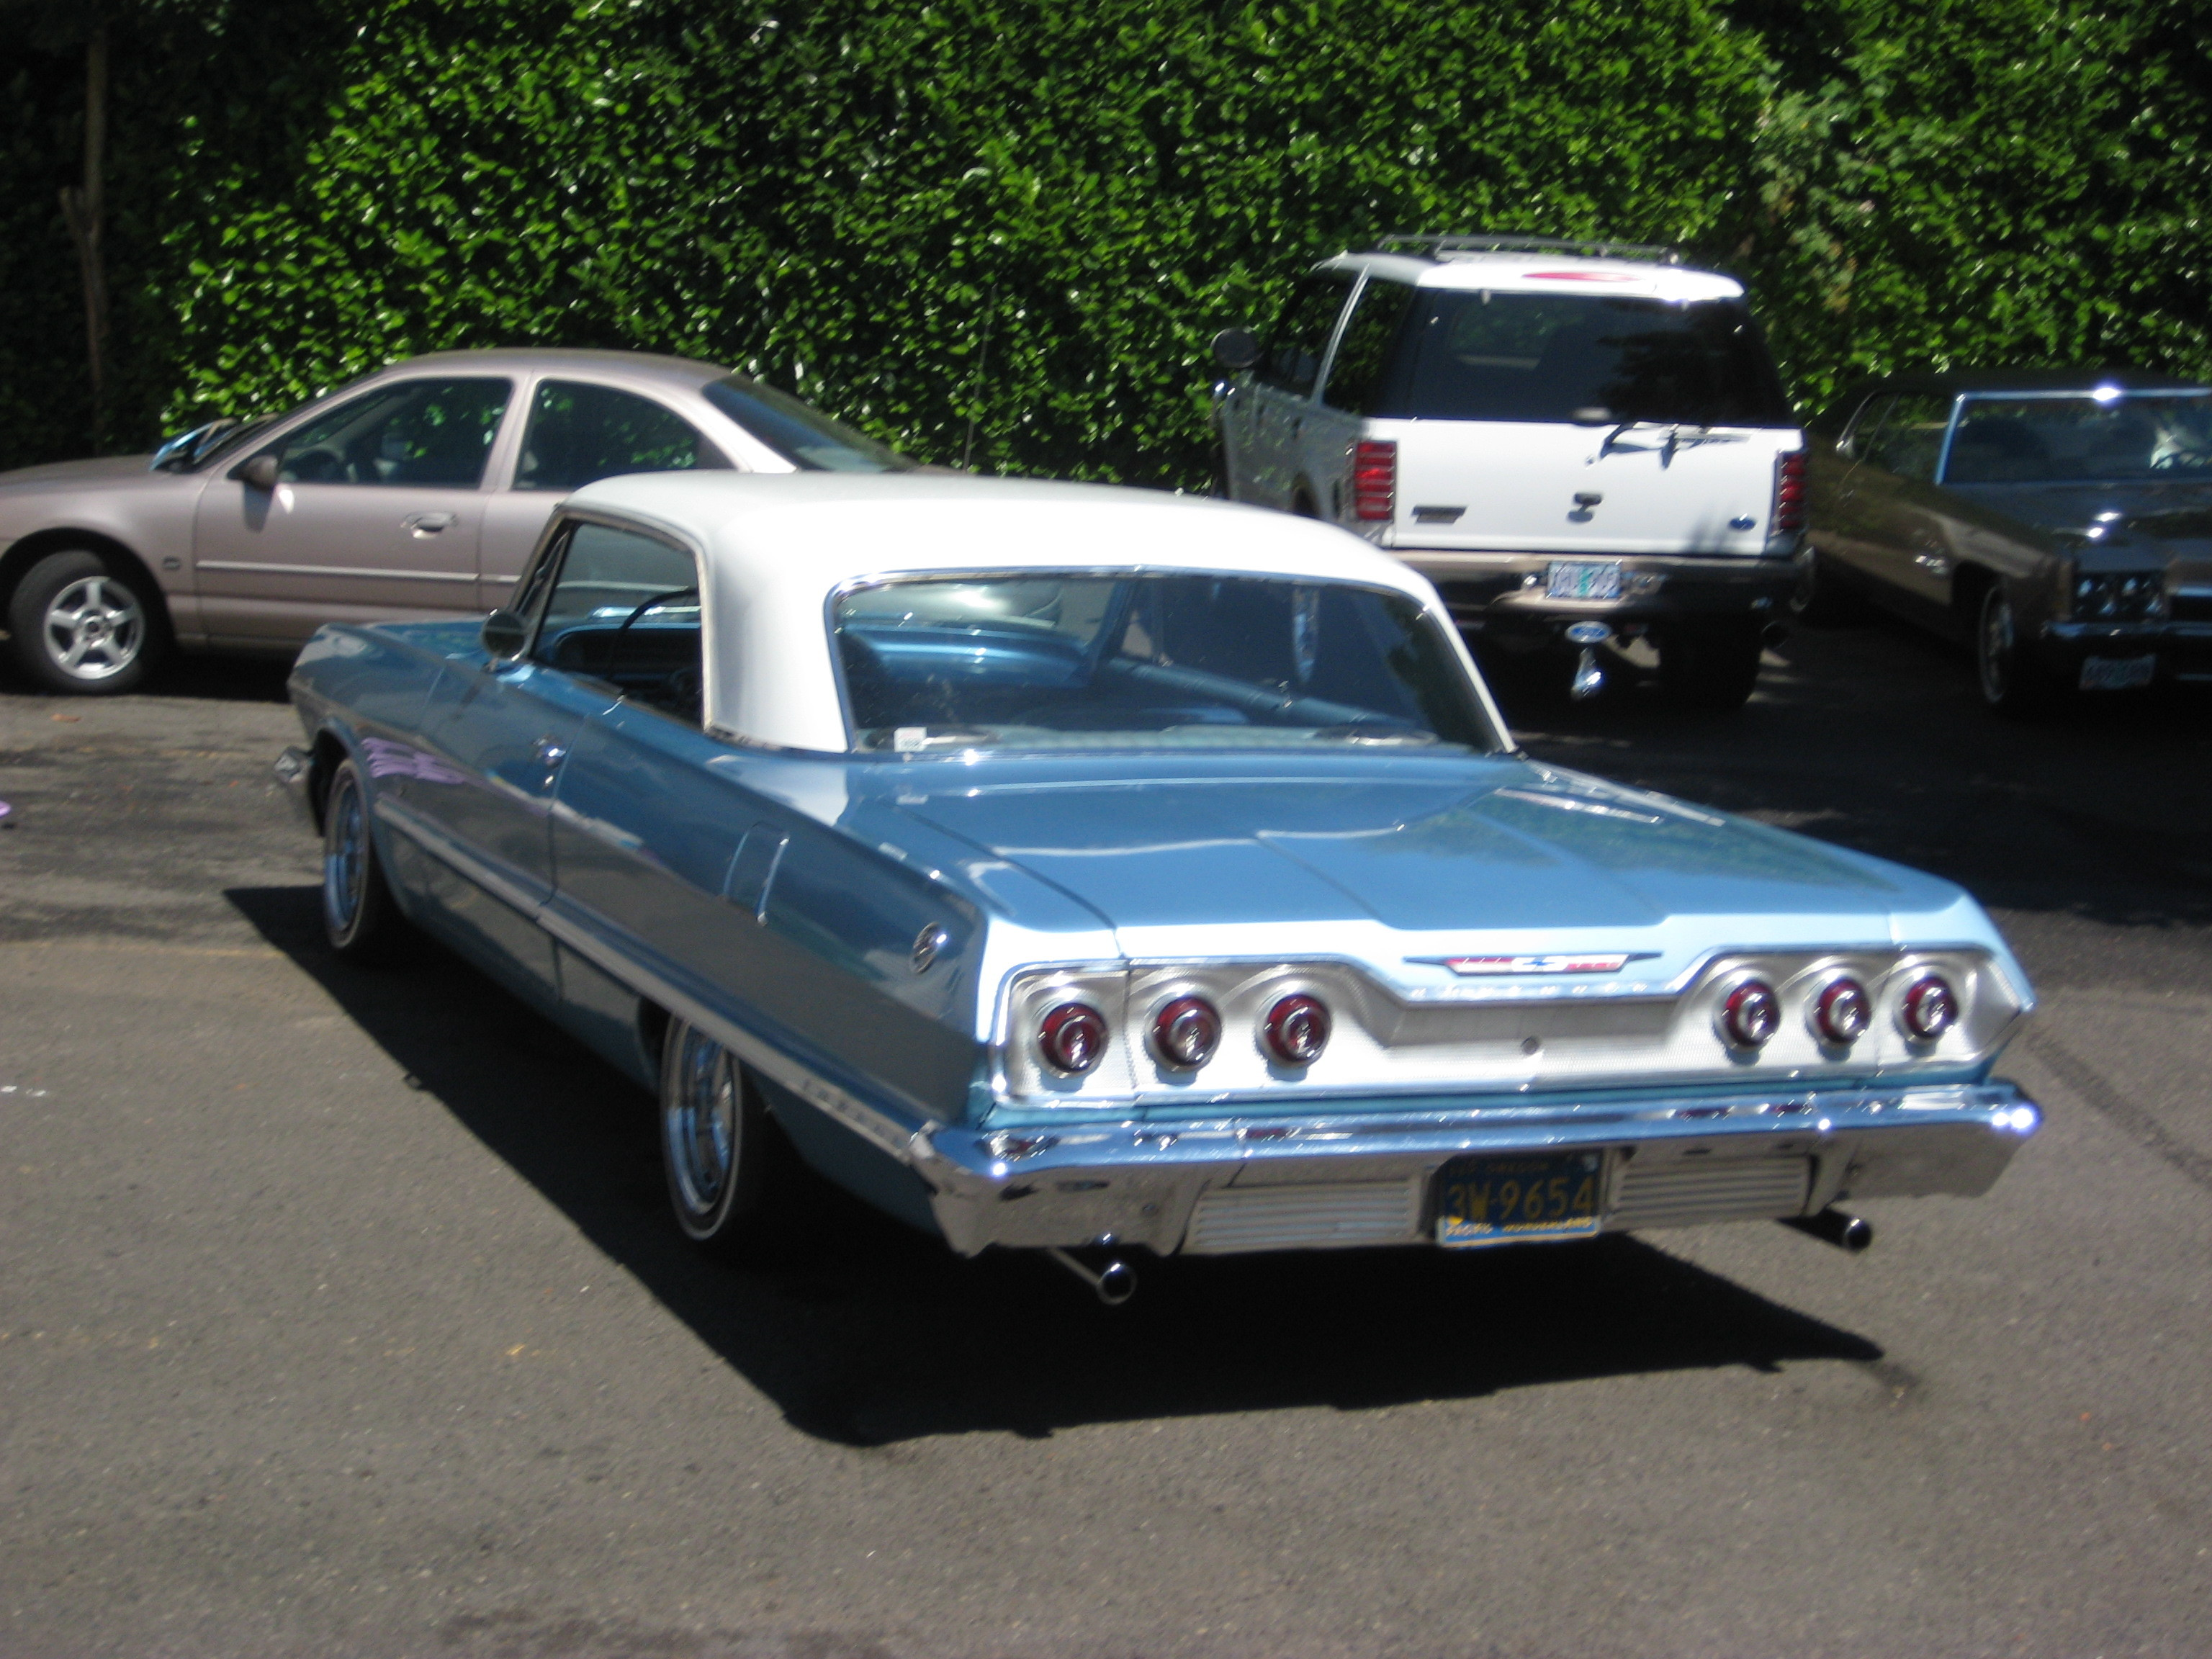 1963 Chevrolet Impala for Sale on ClassicCars.com - 38 Available